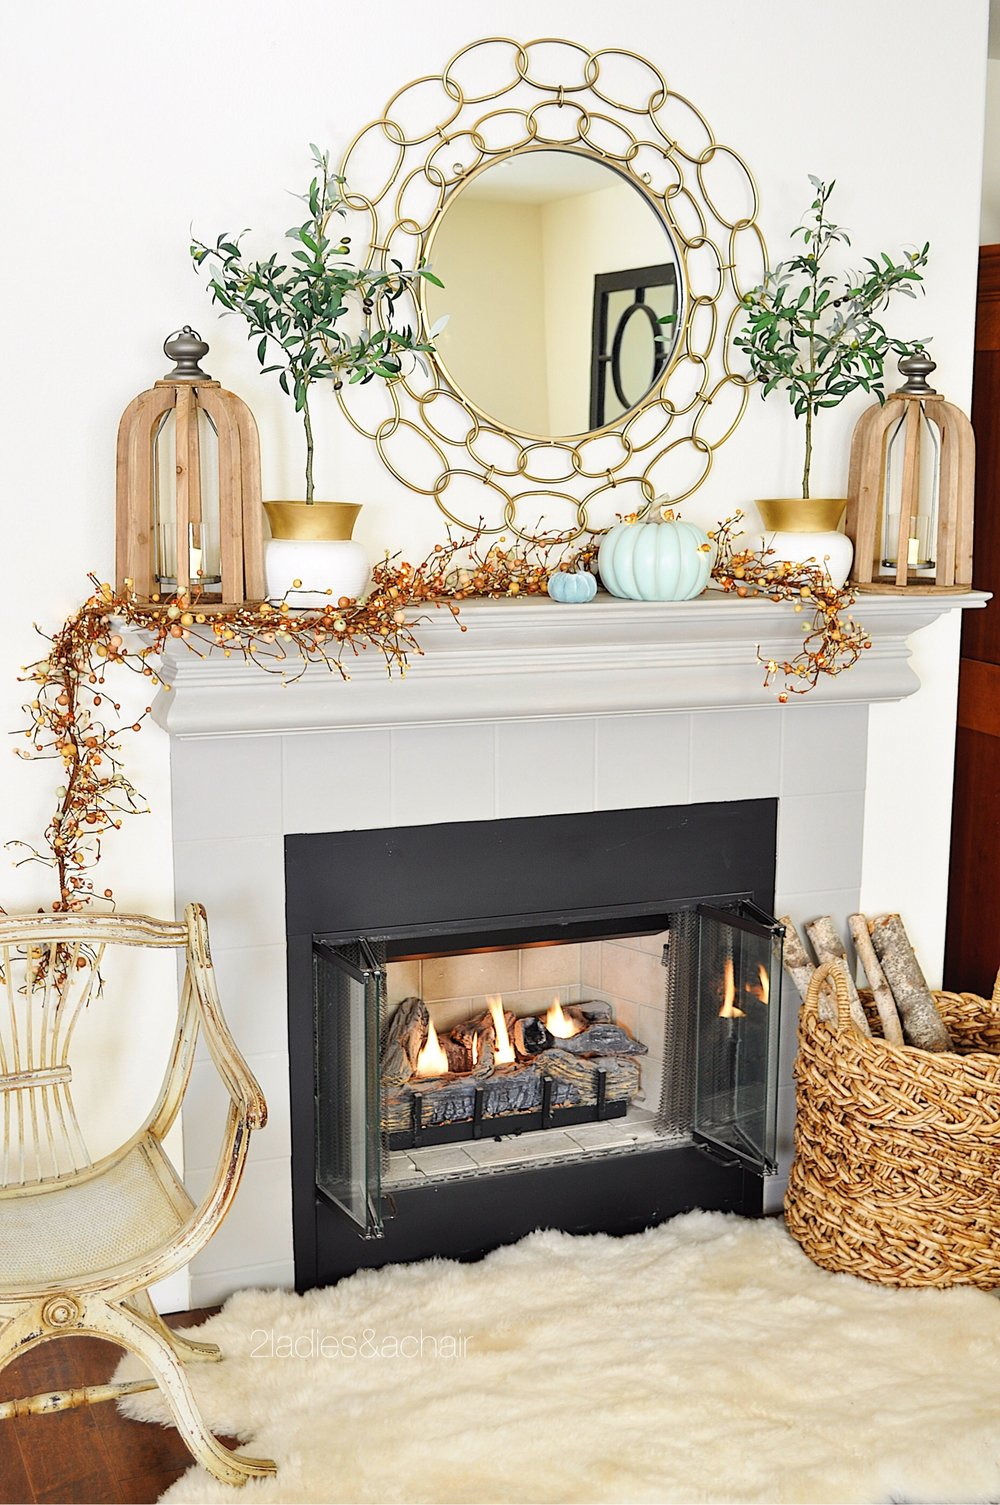 decorate the fall mantel FullSizeRender(71).jpg